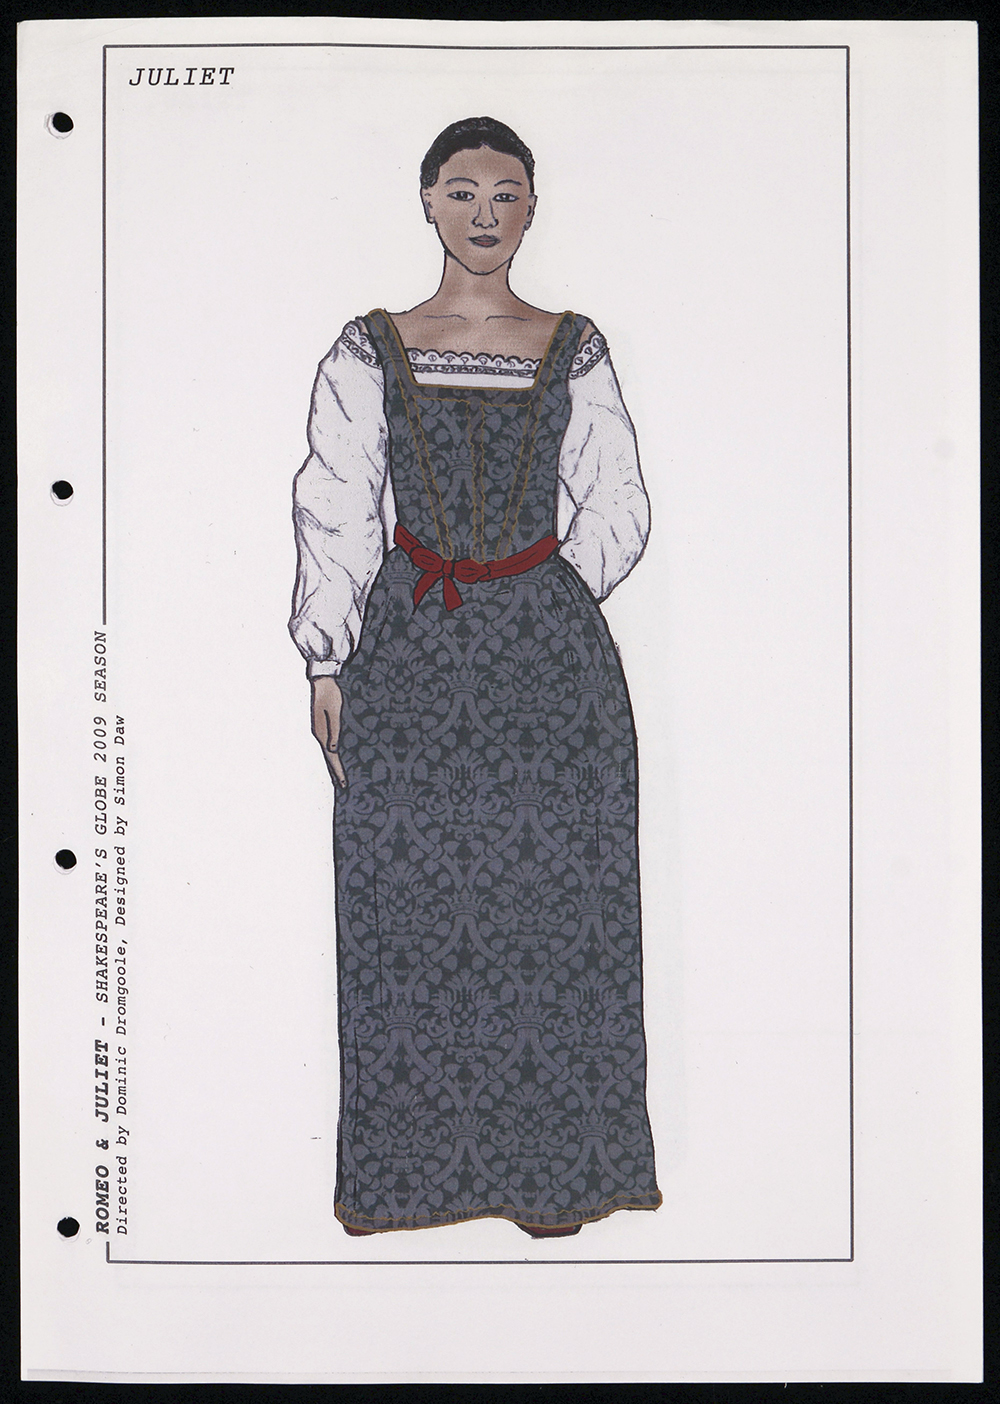 A costume sketch for Juliet, with a blue corset dress.